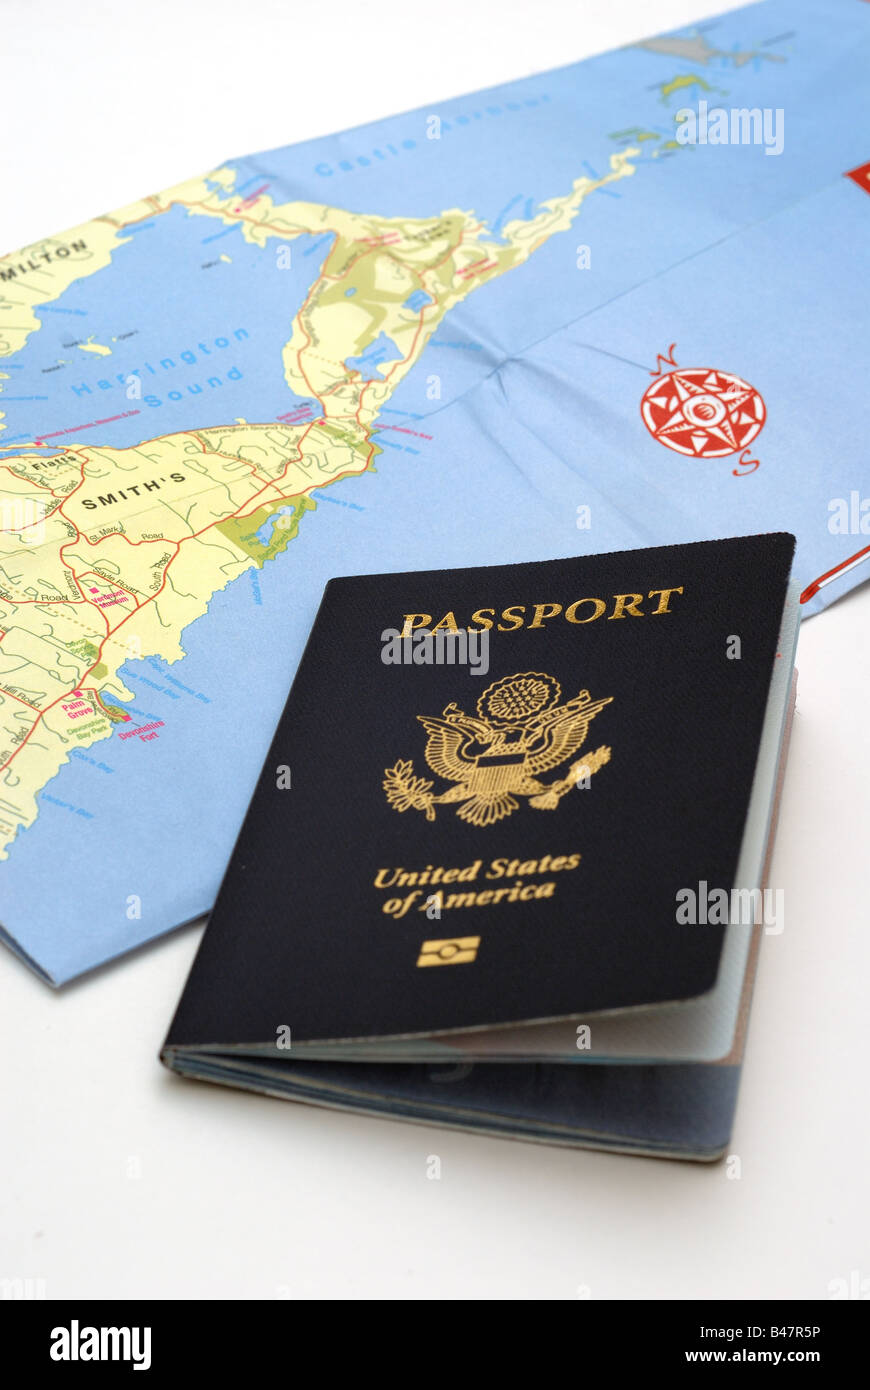 A United States Passport and a folded map of Bermuda illustrate the ...